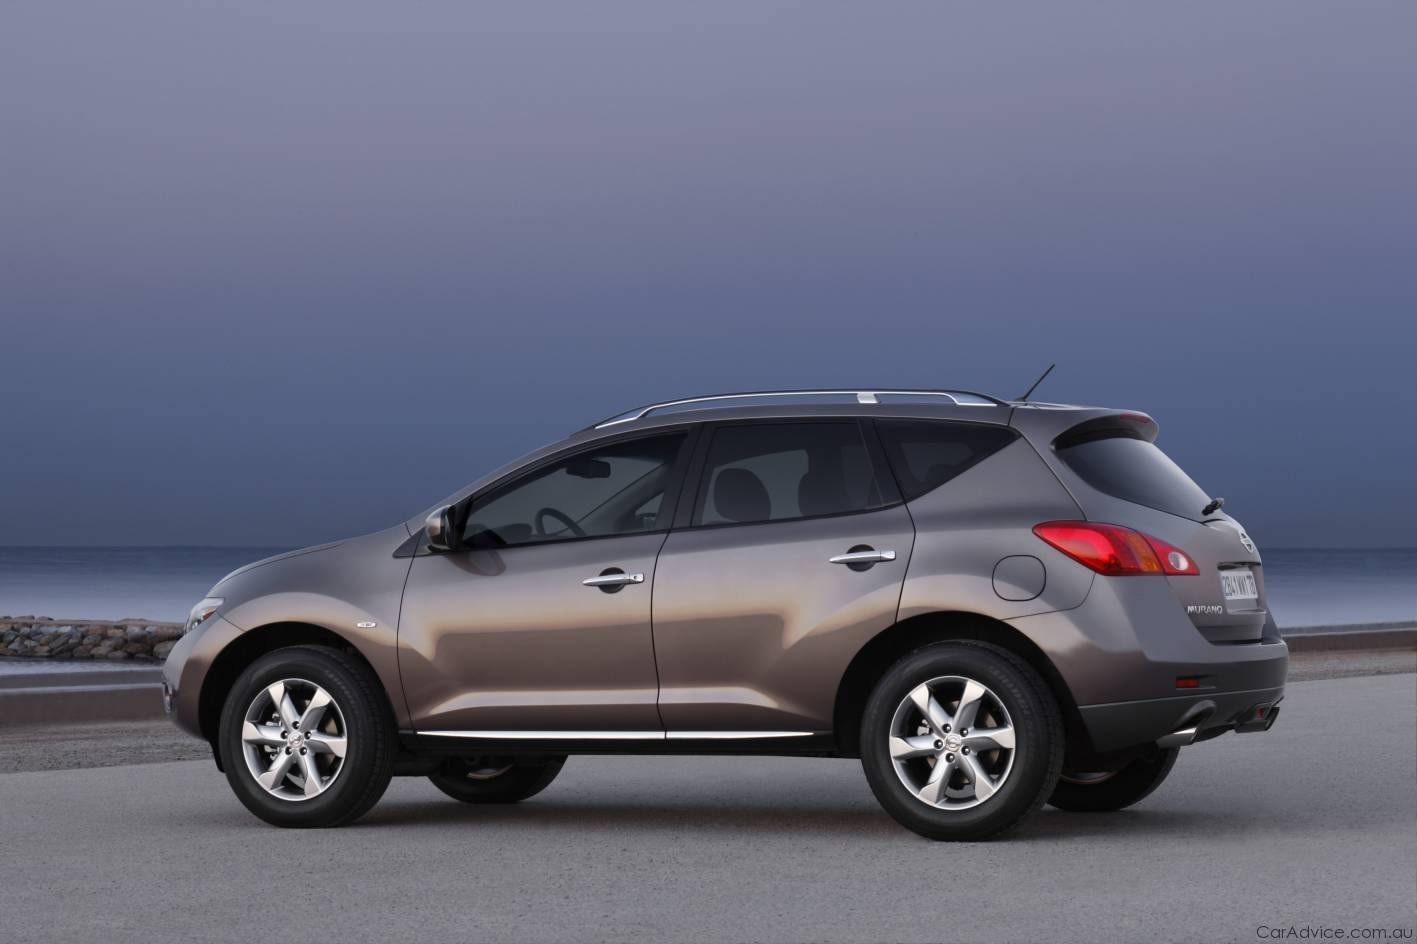 2007 Nissan Murano Tailgate Manual Simple Instruction Guide Books Fuse Box 2010 Reviews Pictures And Prices Us Autos Post 2003 Diagram